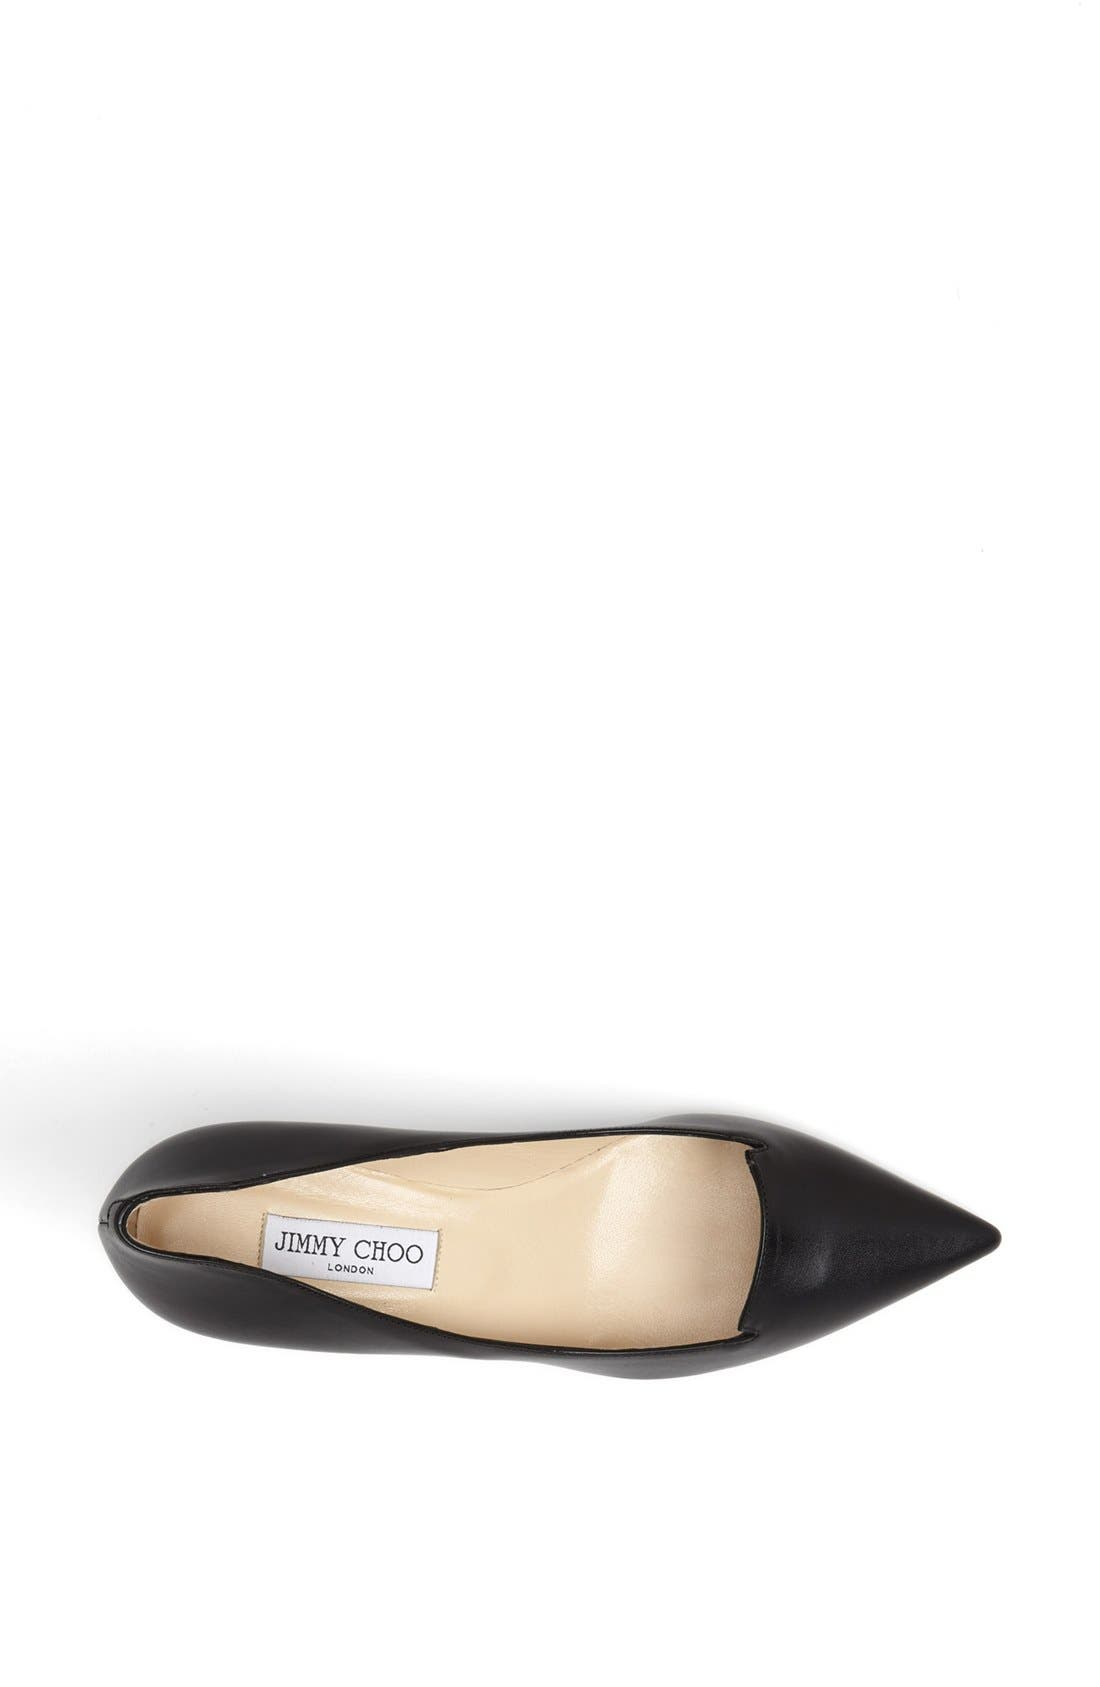 Alternate Image 3  - Jimmy Choo 'Allure' Pump (Women)